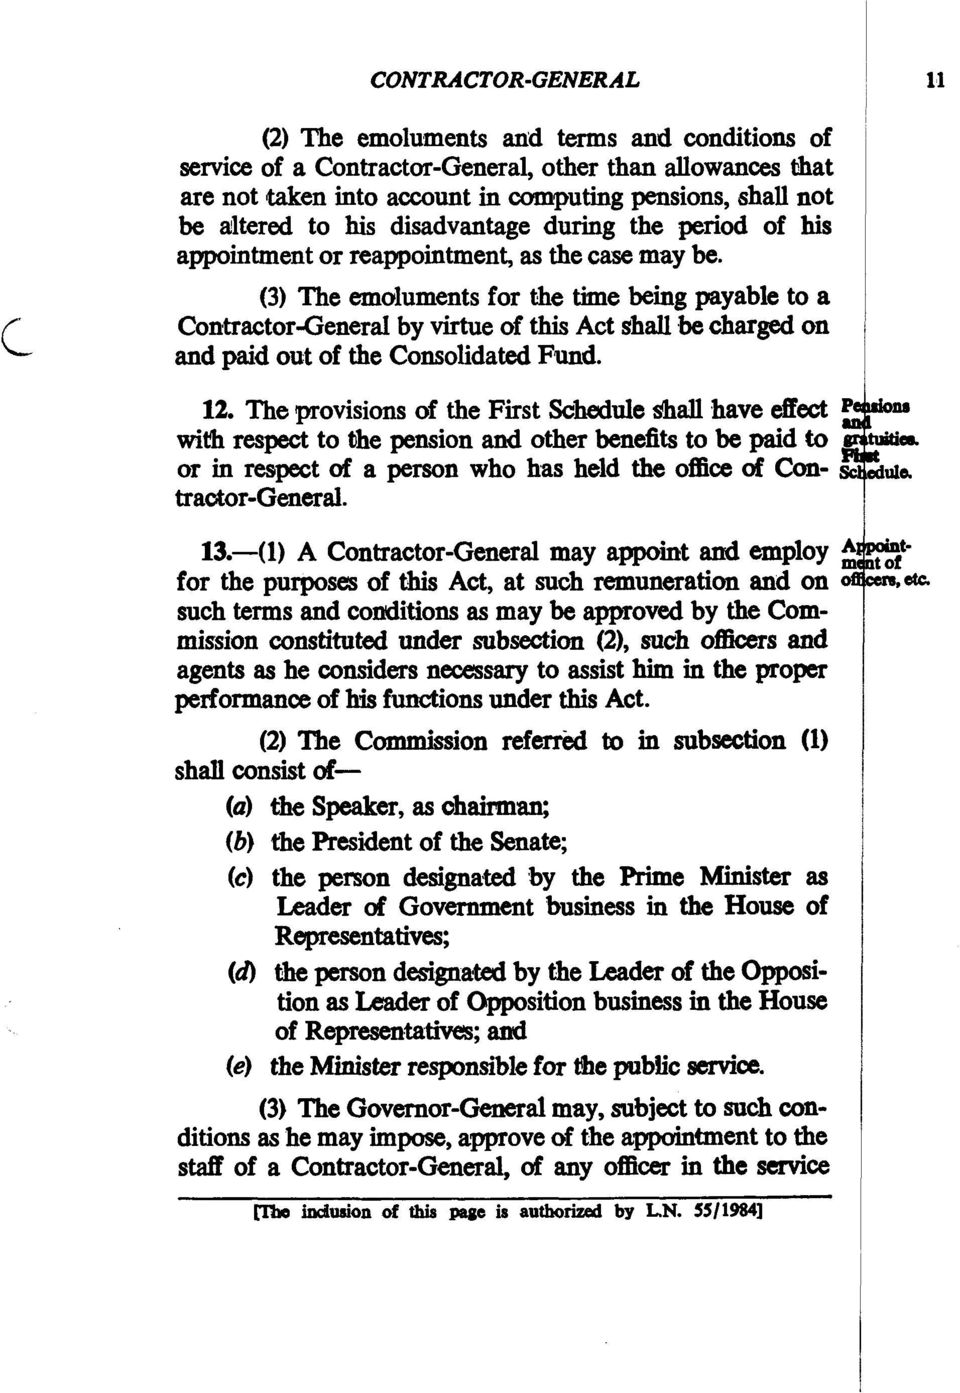 (3) The emcduments for the time being payable to a Contractor-GeneraI by virtue of this Act shall,be charged on and paid out of the Consolidated Fund. 12.